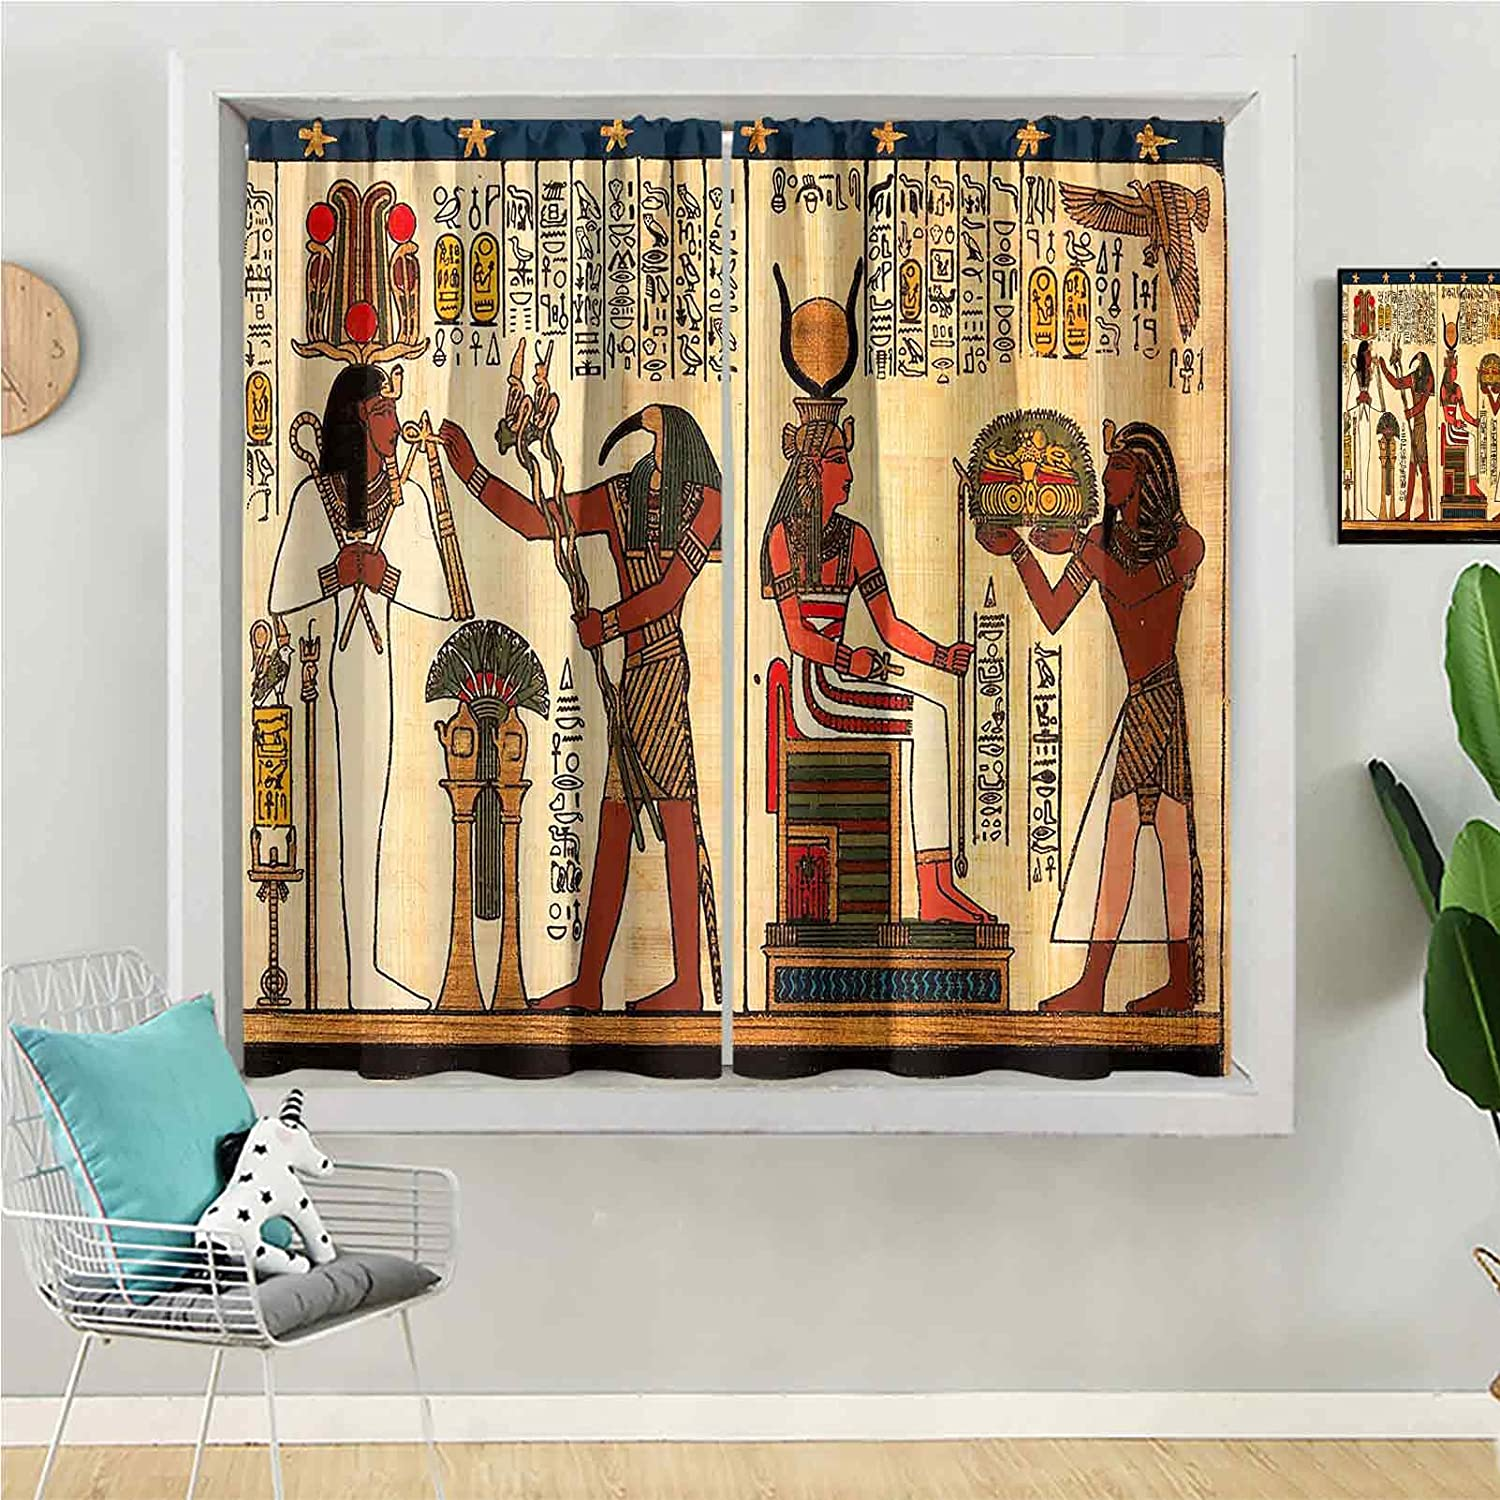 Save money Blackout Curtain 84 inches Long Be Beach Mall Kids Window for Panel